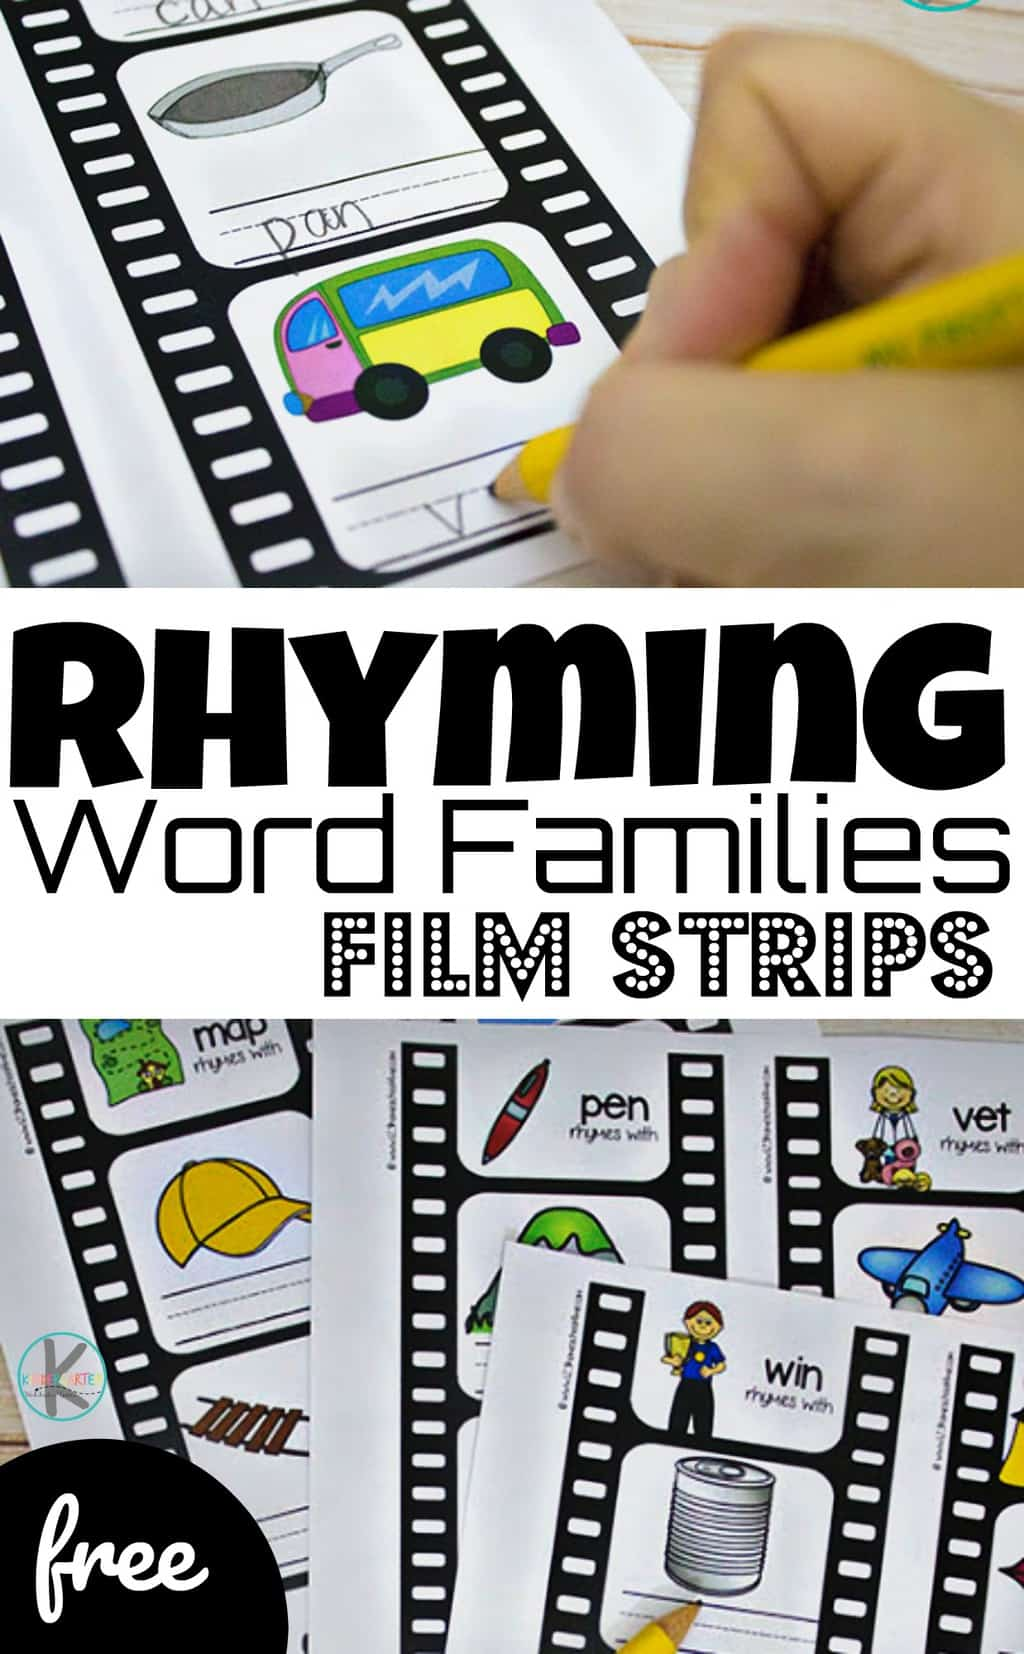 Help kids learn to identifyrhyming word families to improve reading and spelling skills with this fun word family printable activity. These free printable word family strips have pictures for kindergarteners and first grade students to sound out and spell. Download pdf file with rhyming families activity to improve fluency!